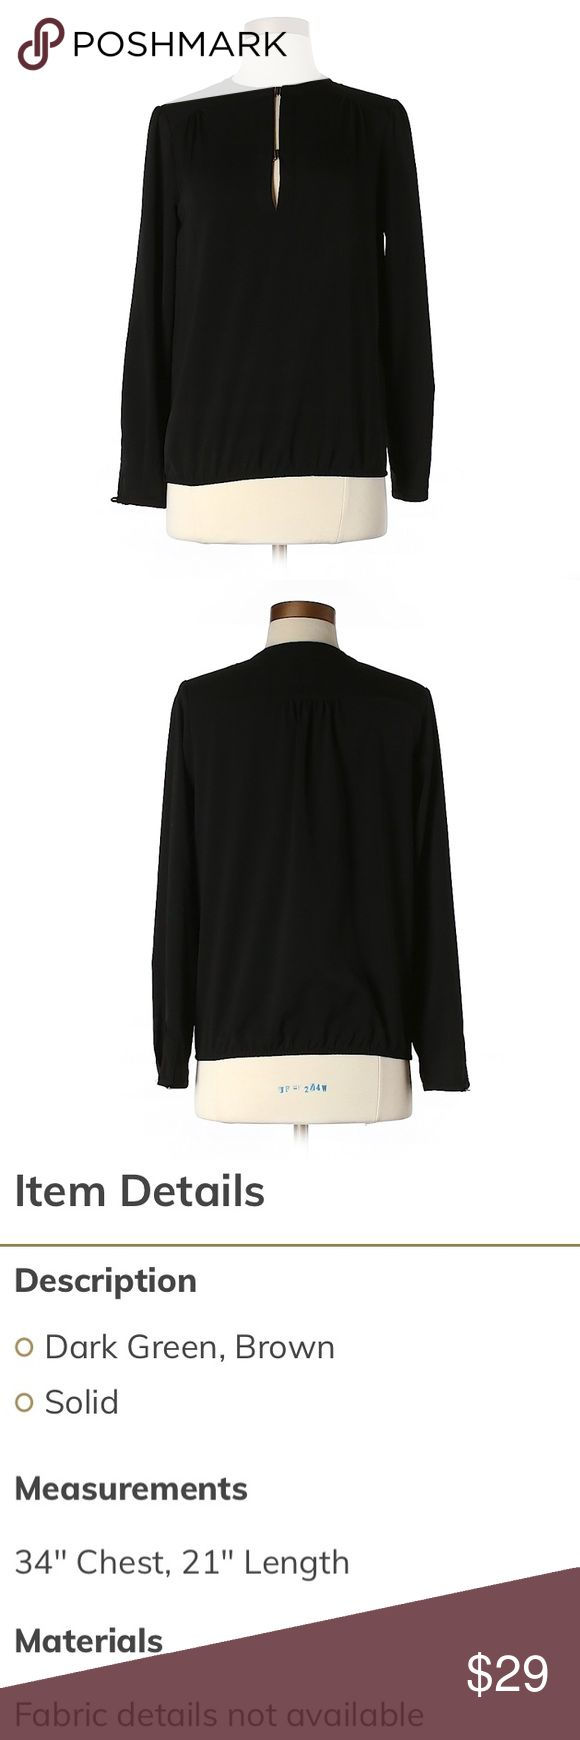 EUC 🎉 Zara Long Sleeve Top This will SHIP AFTER winter vacation. ❄️🎄(Approx. Jan. 4, 2018). 📦📫 Zara Tops Blouses